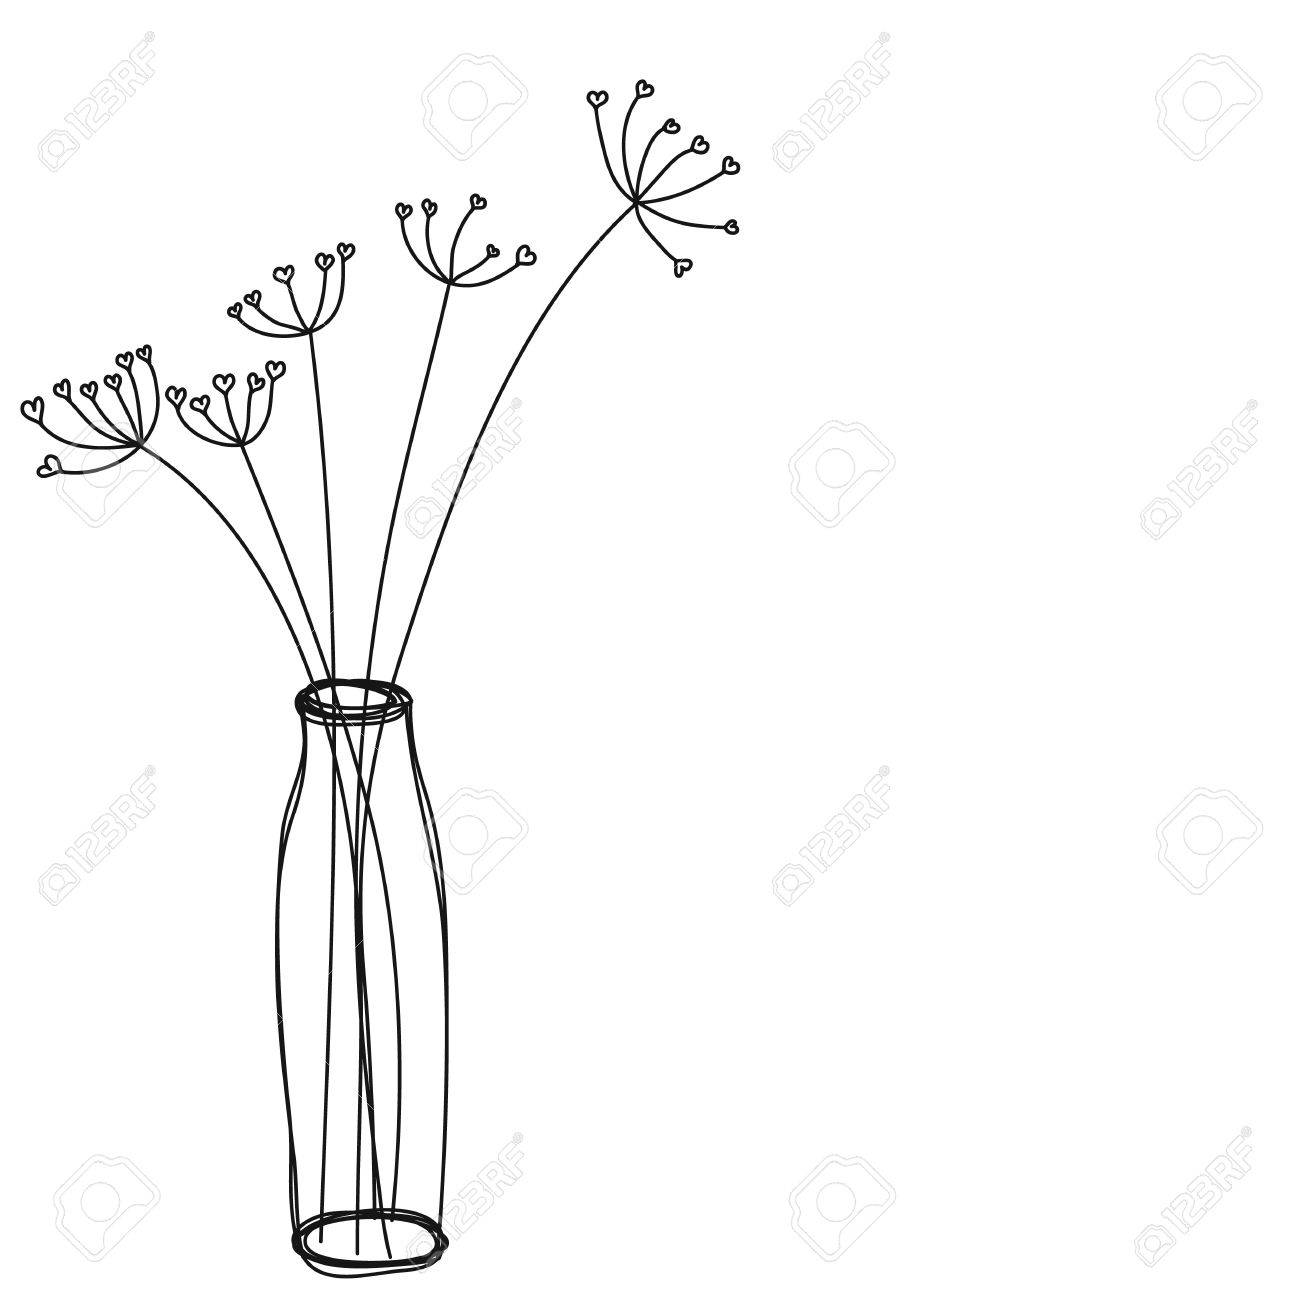 225 & flowers in a vase icon hand drawn vector